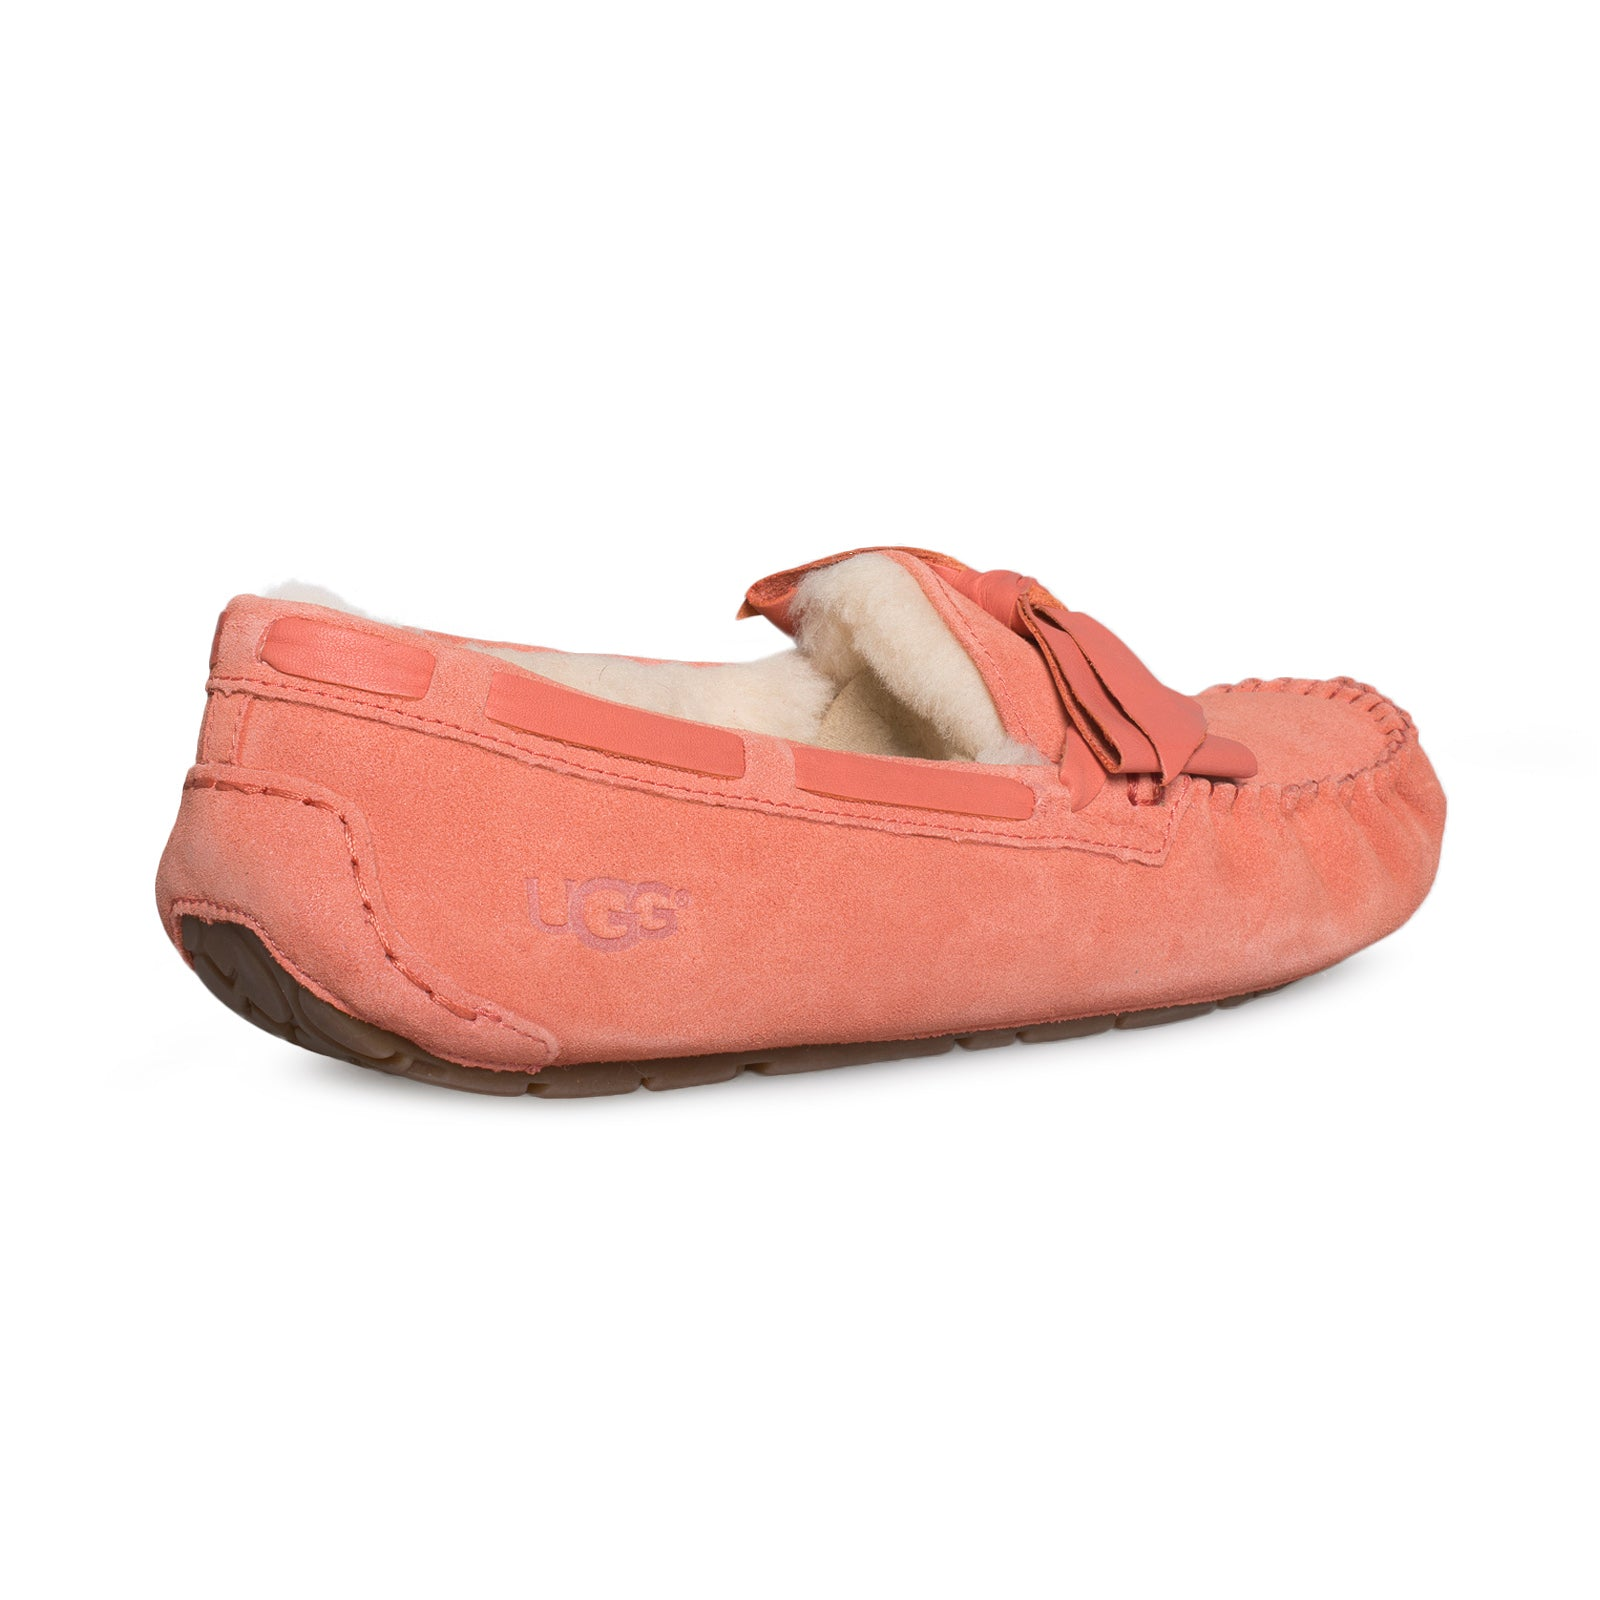 6f02fbdf96c UGG Dakota Leather Bow Vibrant Coral Slippers - Women's